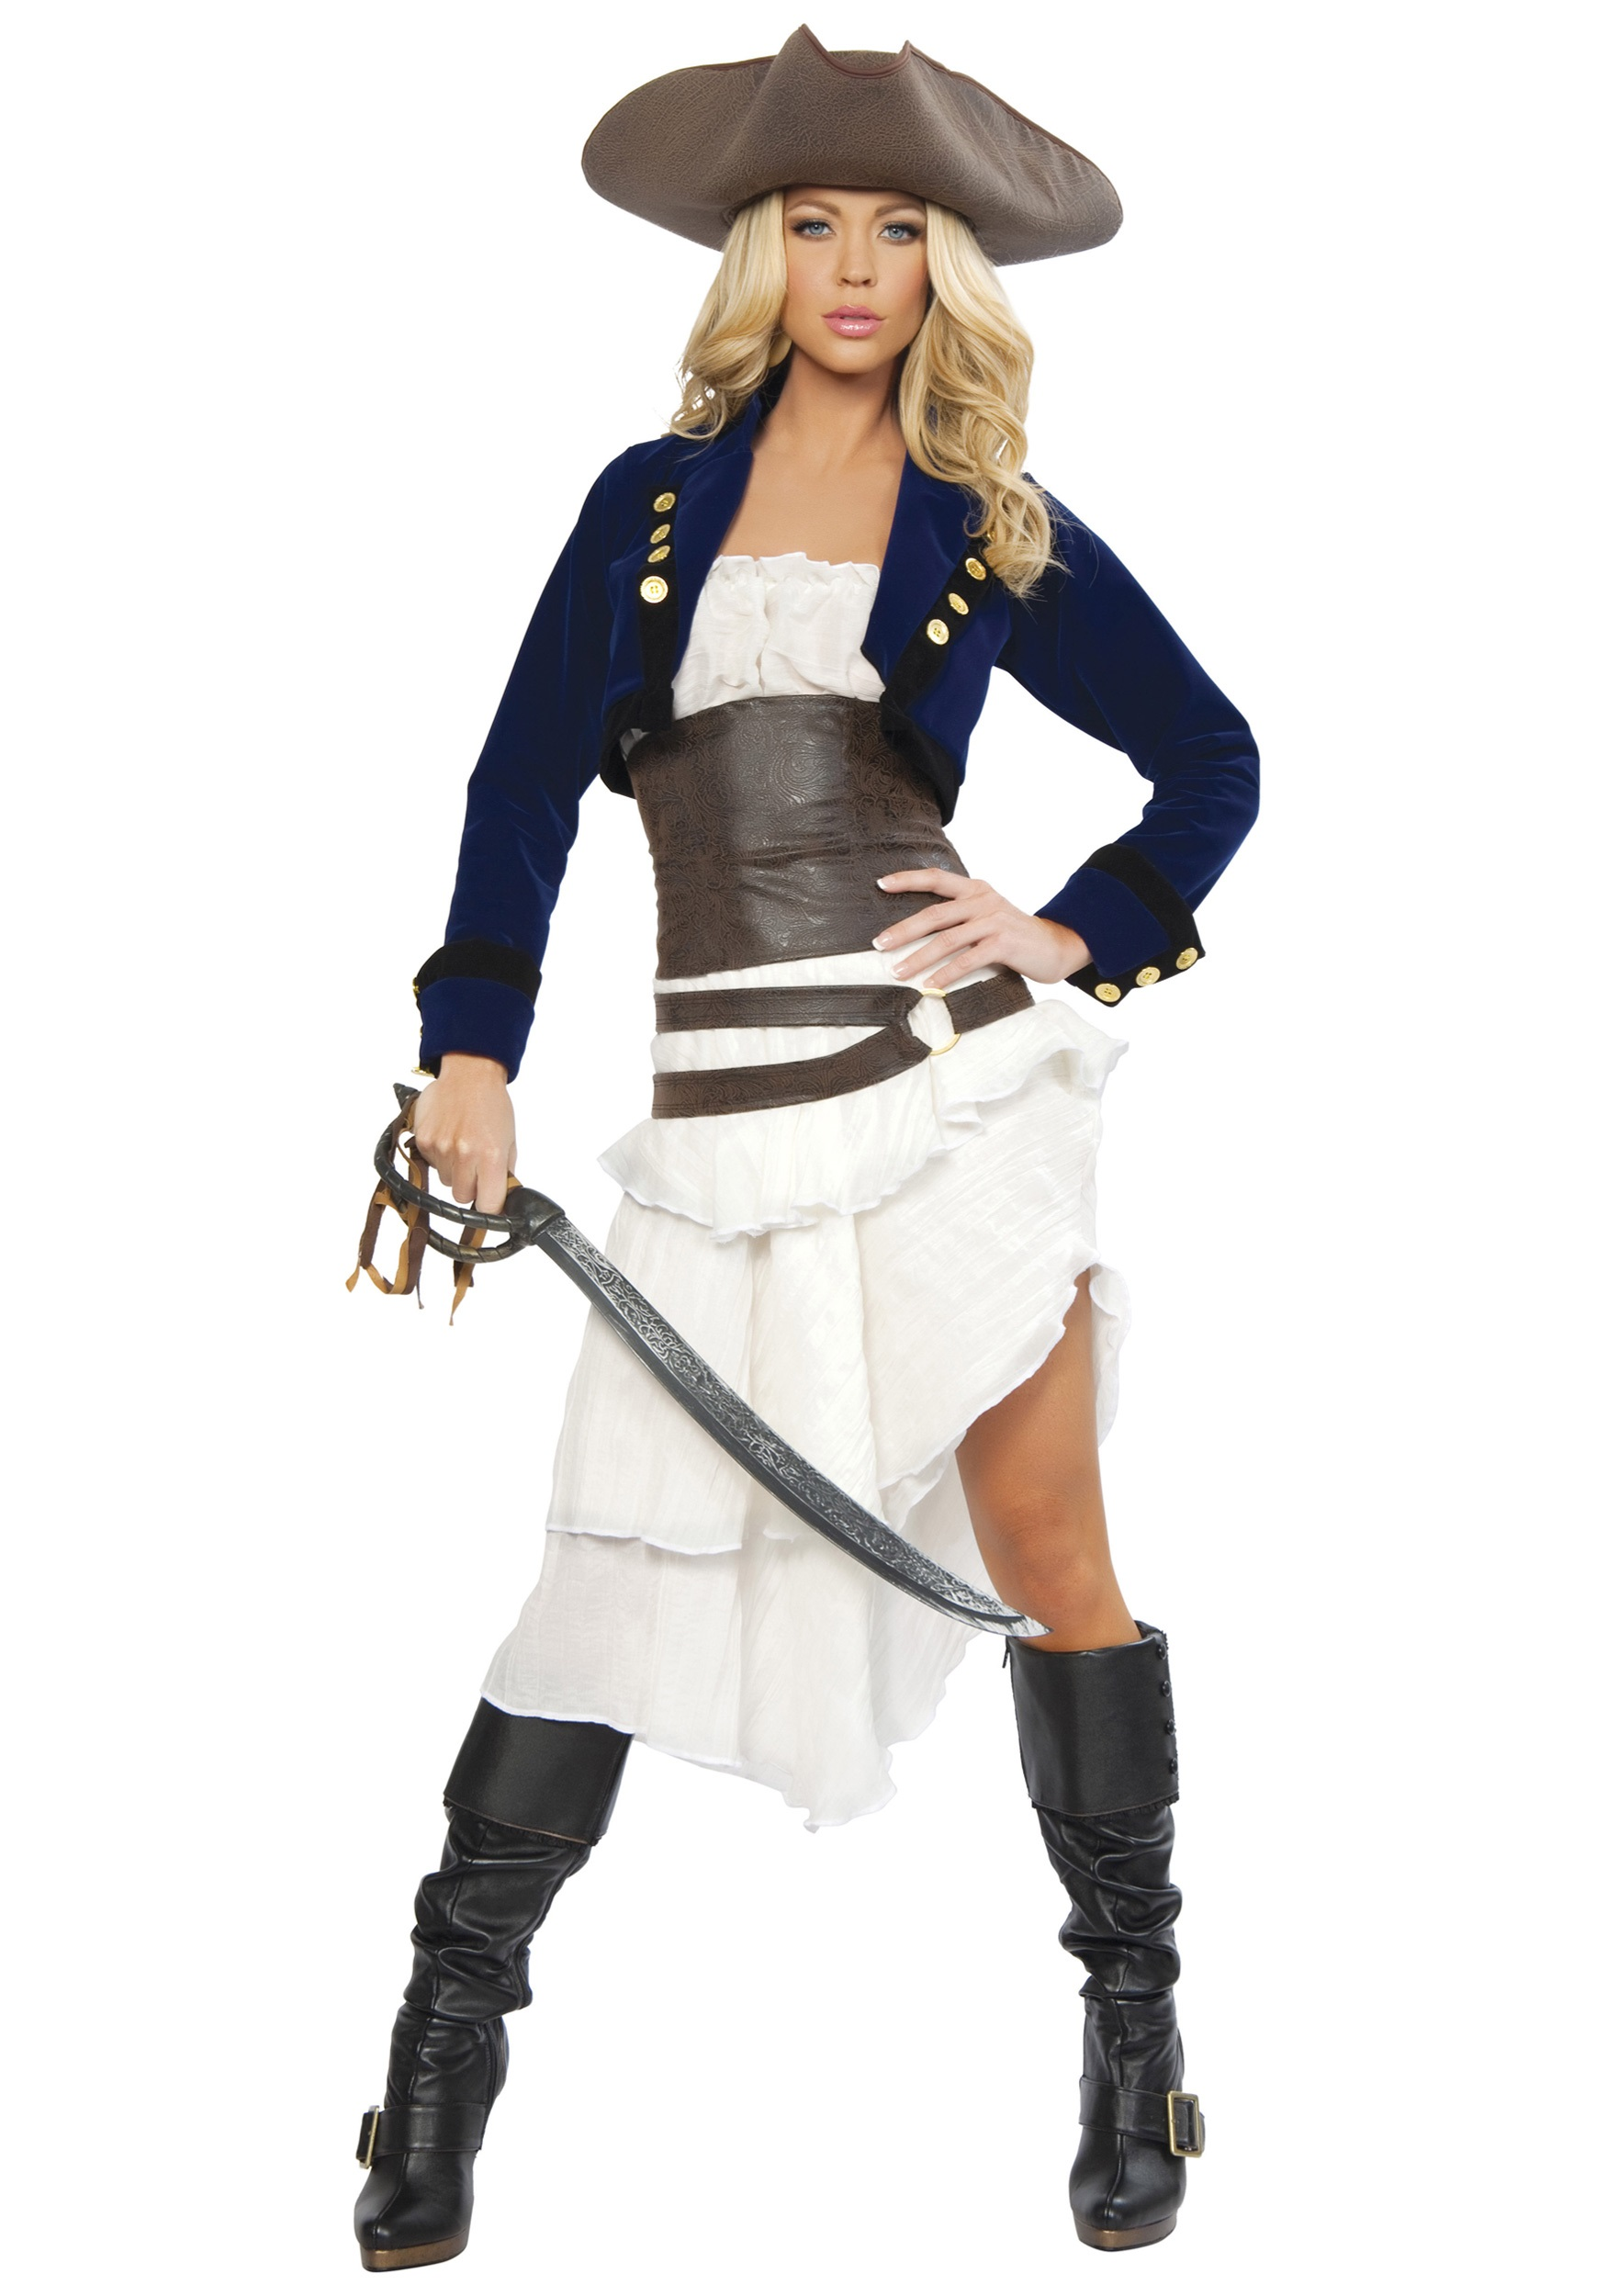 Womenu0027s Deluxe Colonial Pirate Costume  sc 1 st  Fun.com & Womenu0027s Colonial Pirate Costume